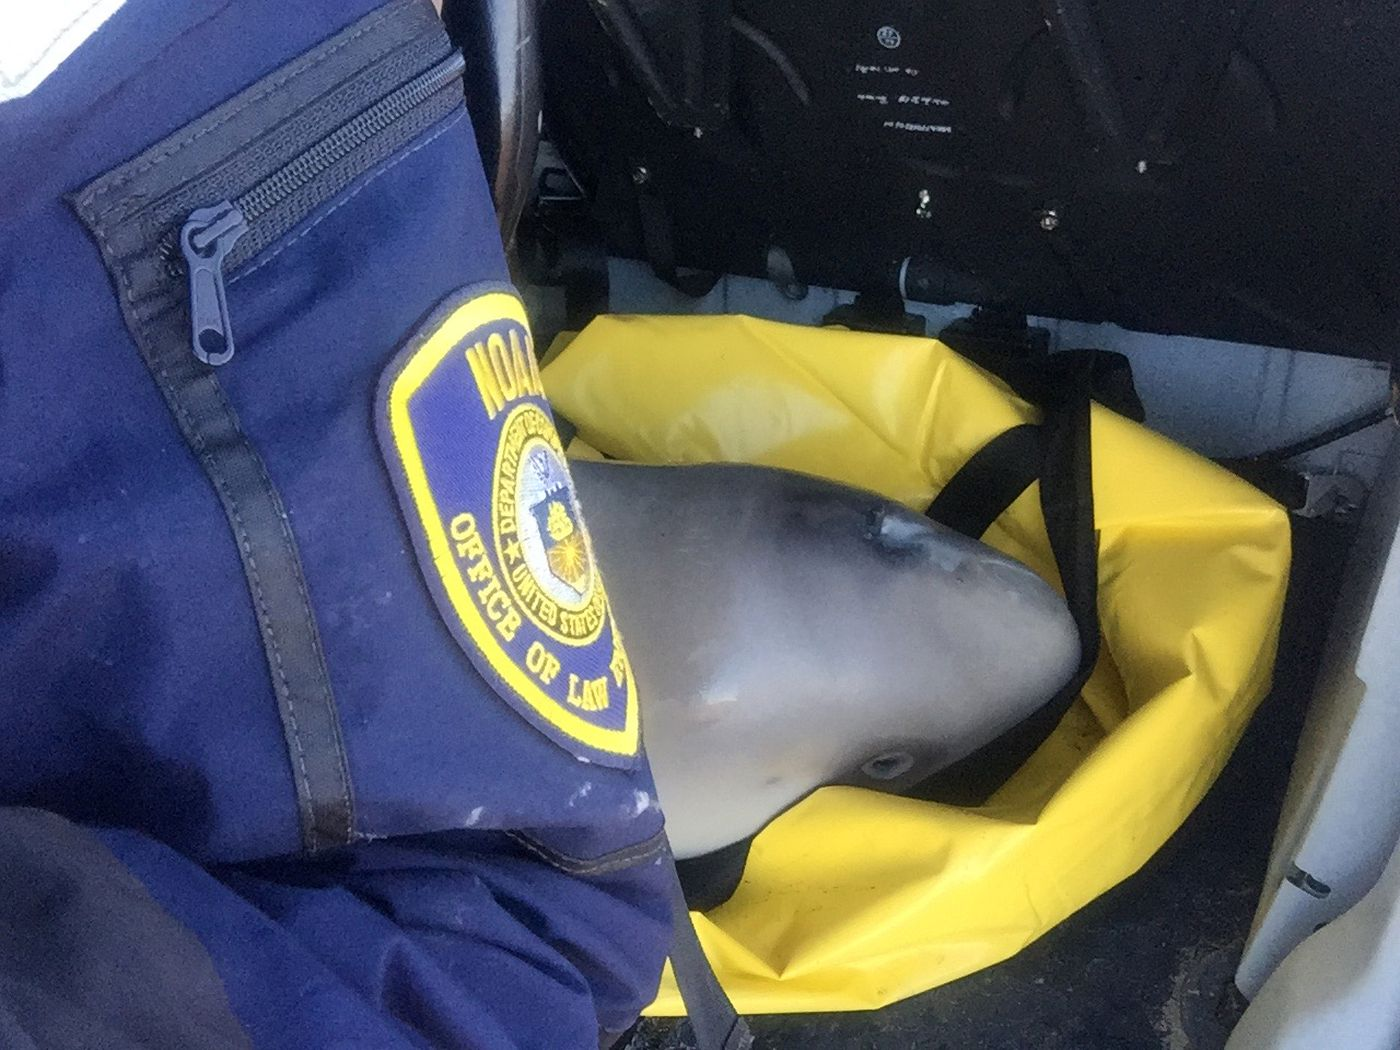 A Cook Inlet beluga calf awaits transport inside and Alaska Department of Public safety helicopter on Sept. 30. Rescuers used a body bag as a makeshift sling to move the animal. Activities pictured authorized by MMHSRP's MMPA/ESA #18786-01. (Photo by Noah Meisenheimer)